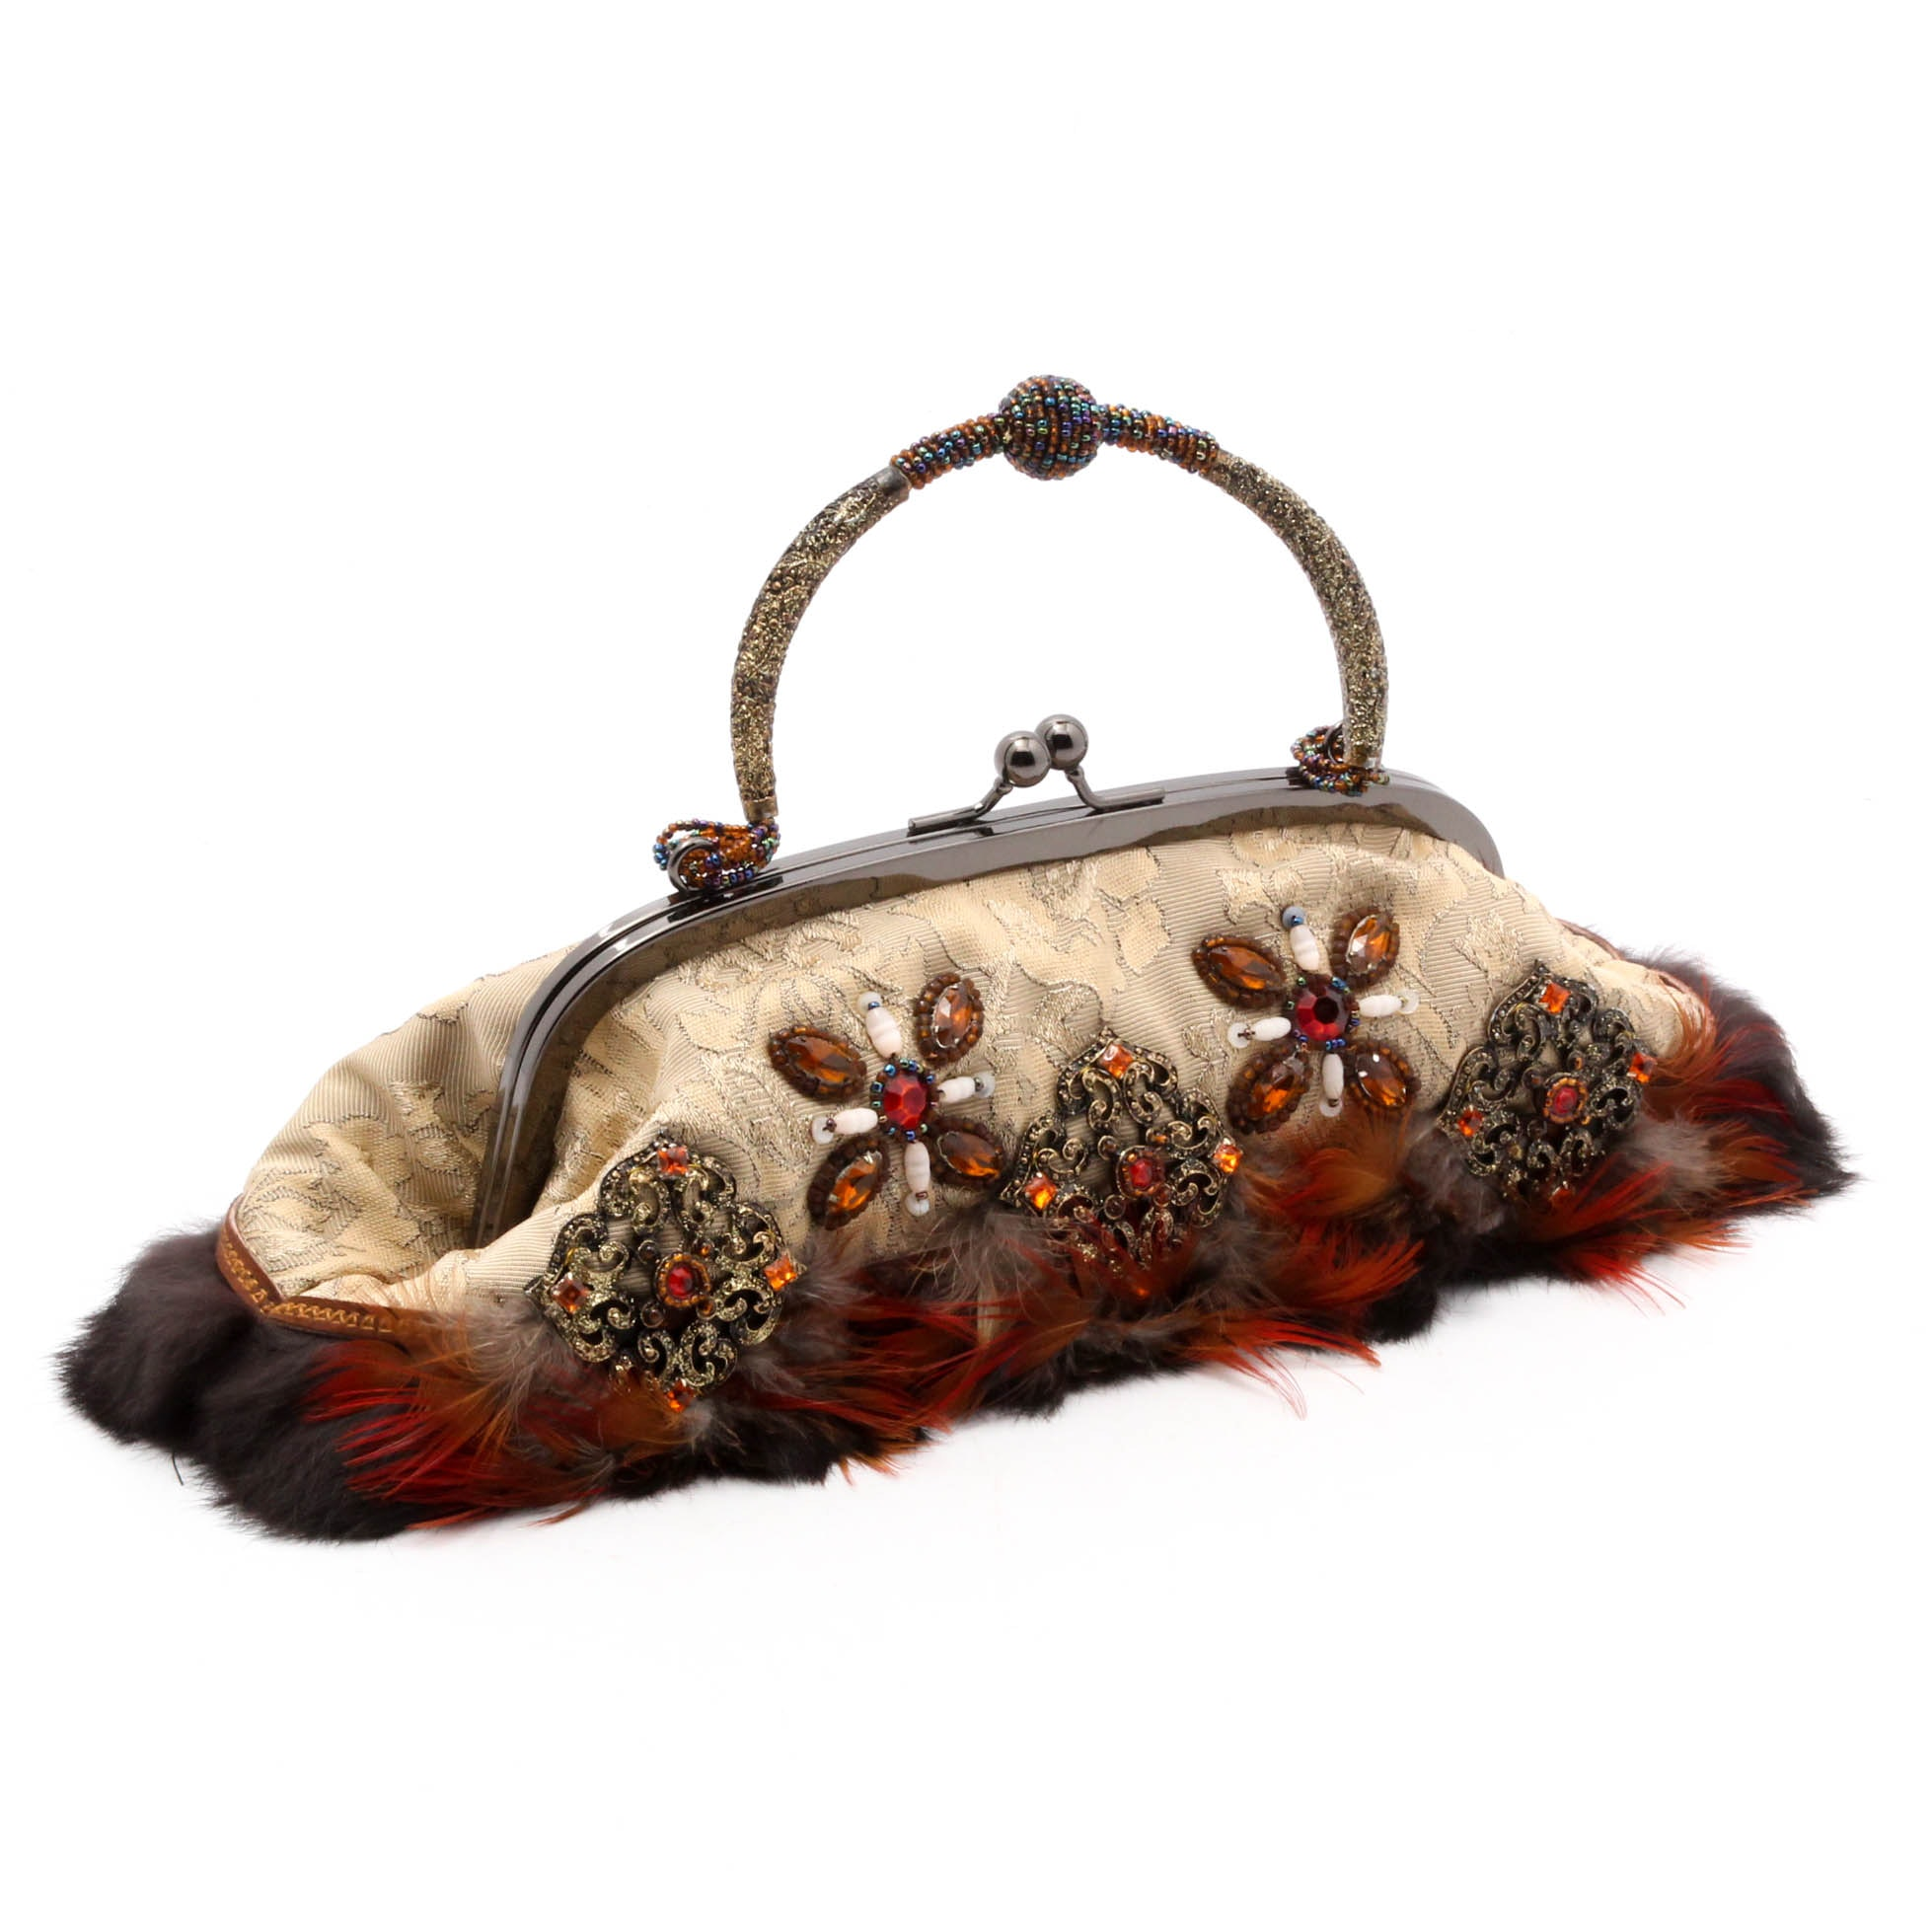 Mary Frances of San Francisco Frame Handbag with Bead and Feather Adornments